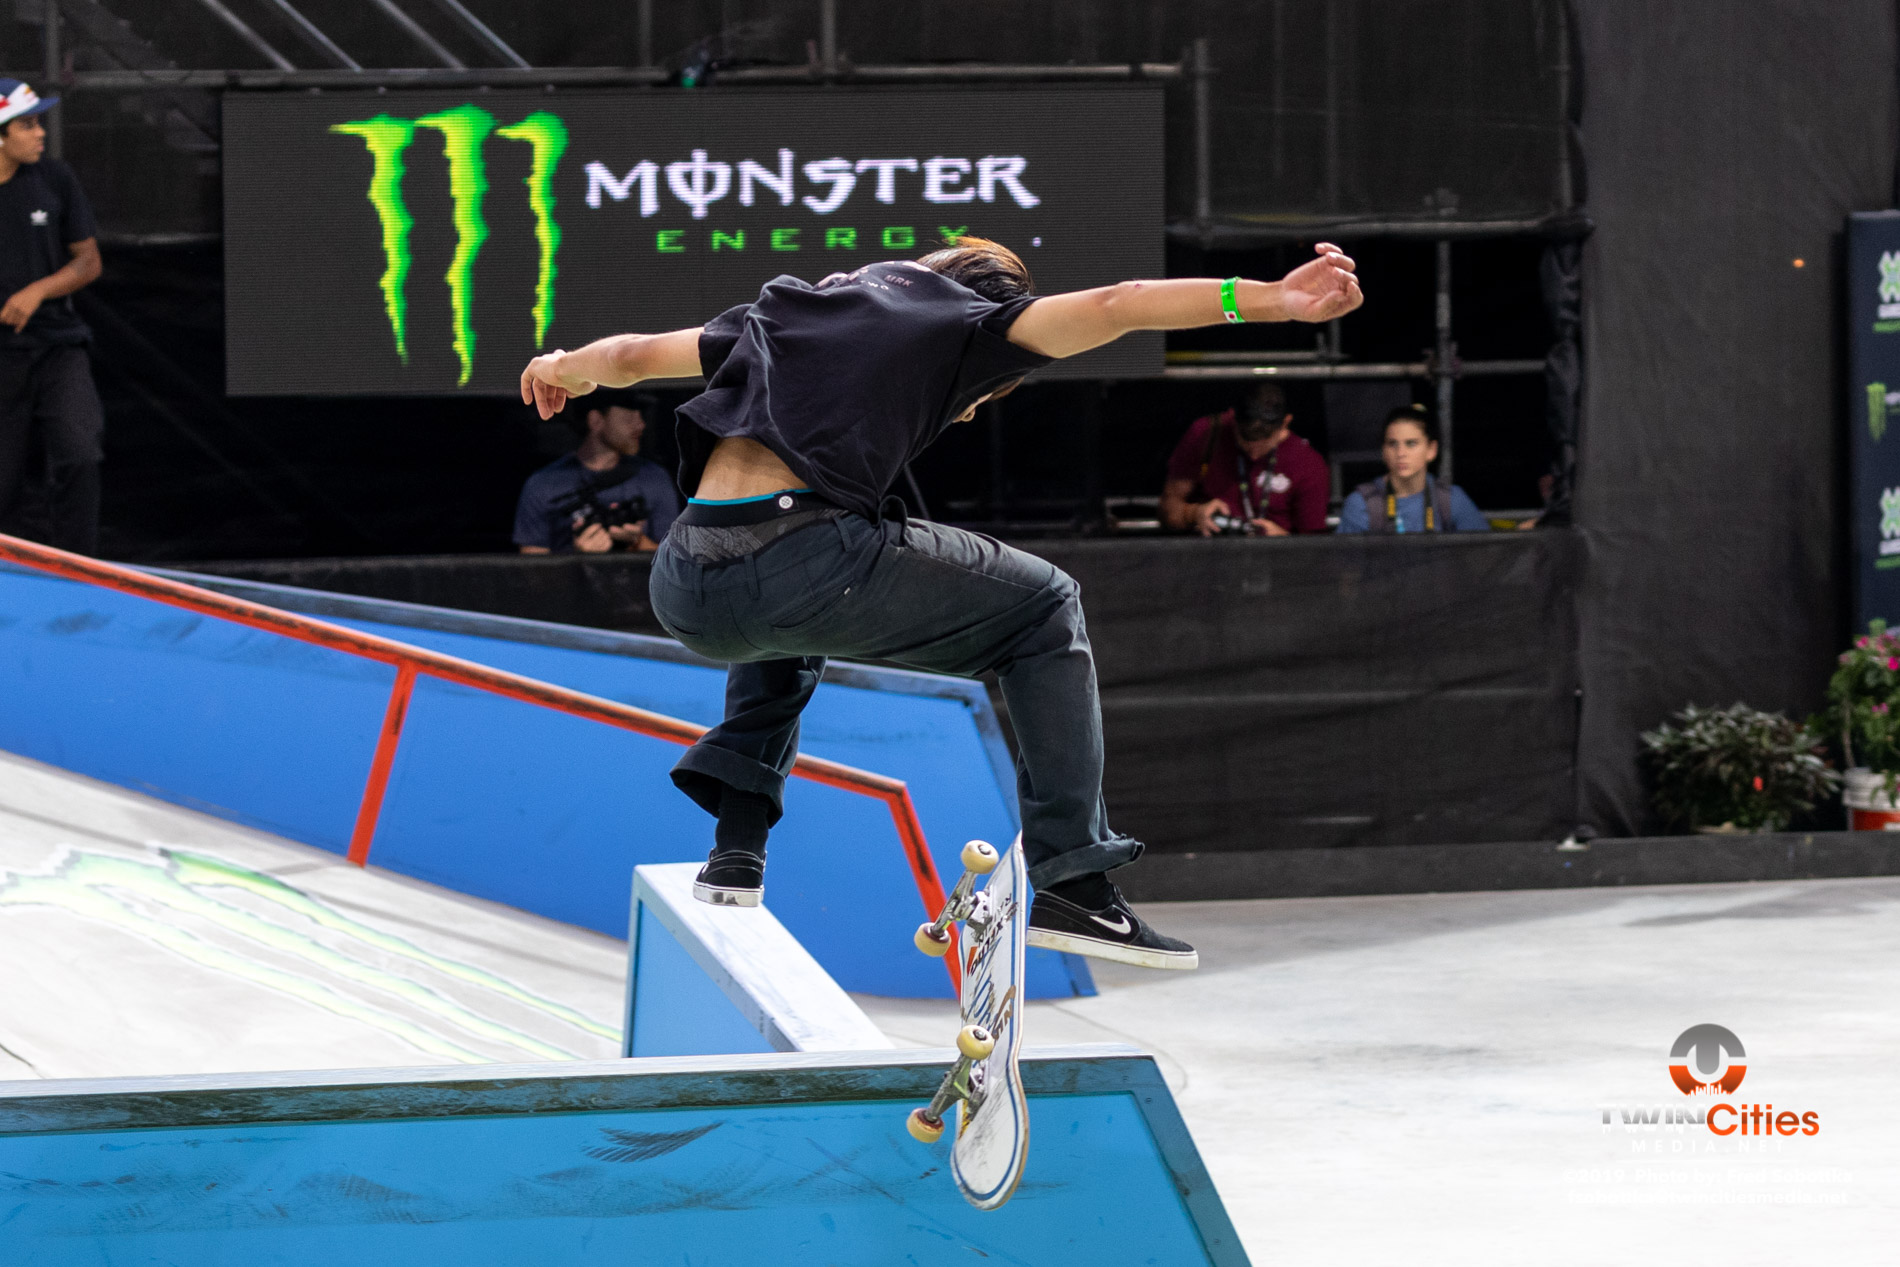 Monster-Energy-Mens-Skateboard-Street-Elimination-03